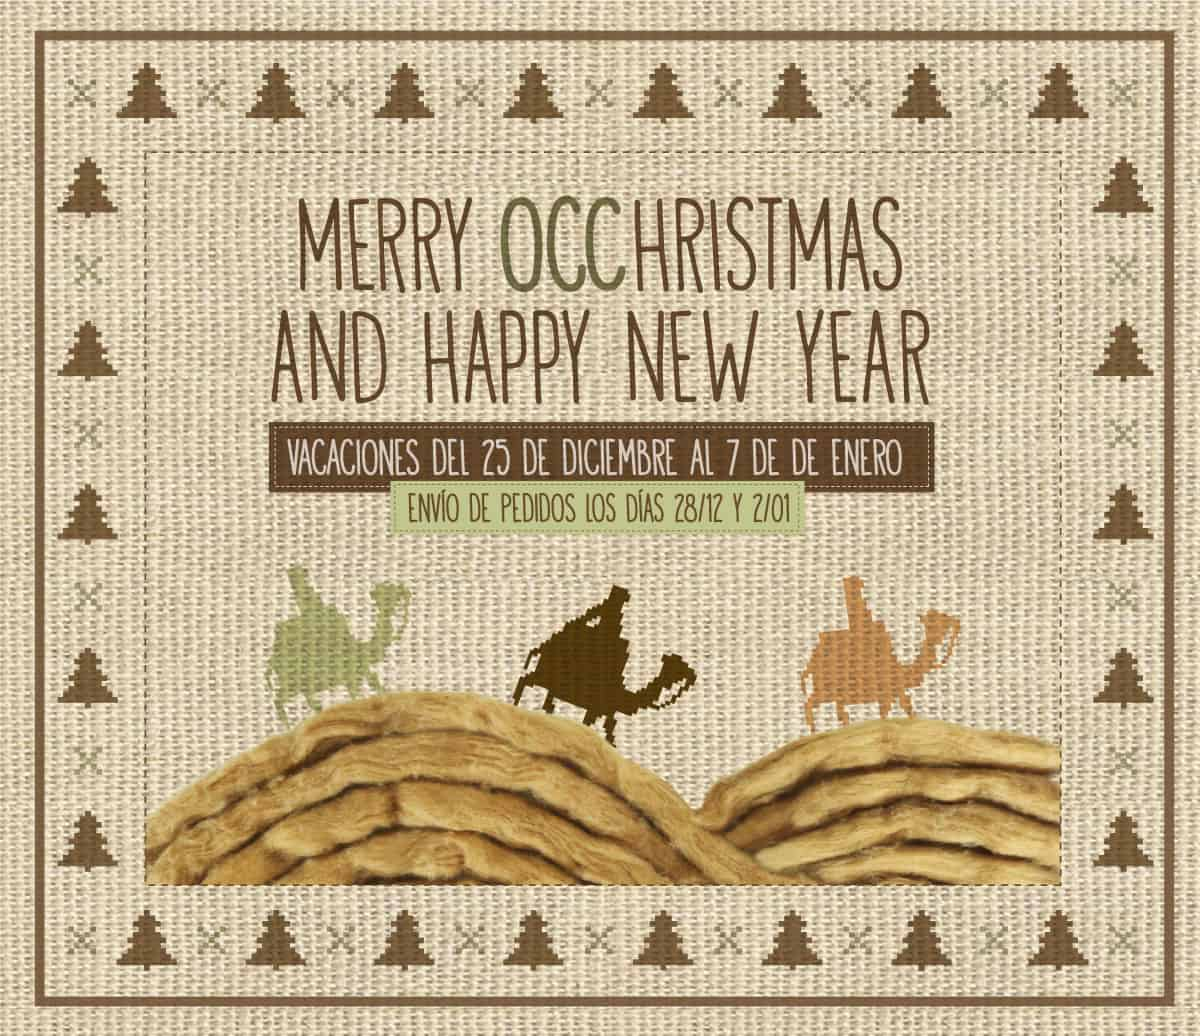 This year, the Three Wise Men will bring you OCCGuarantee® cotton, instead of gold, incense and myrrh.